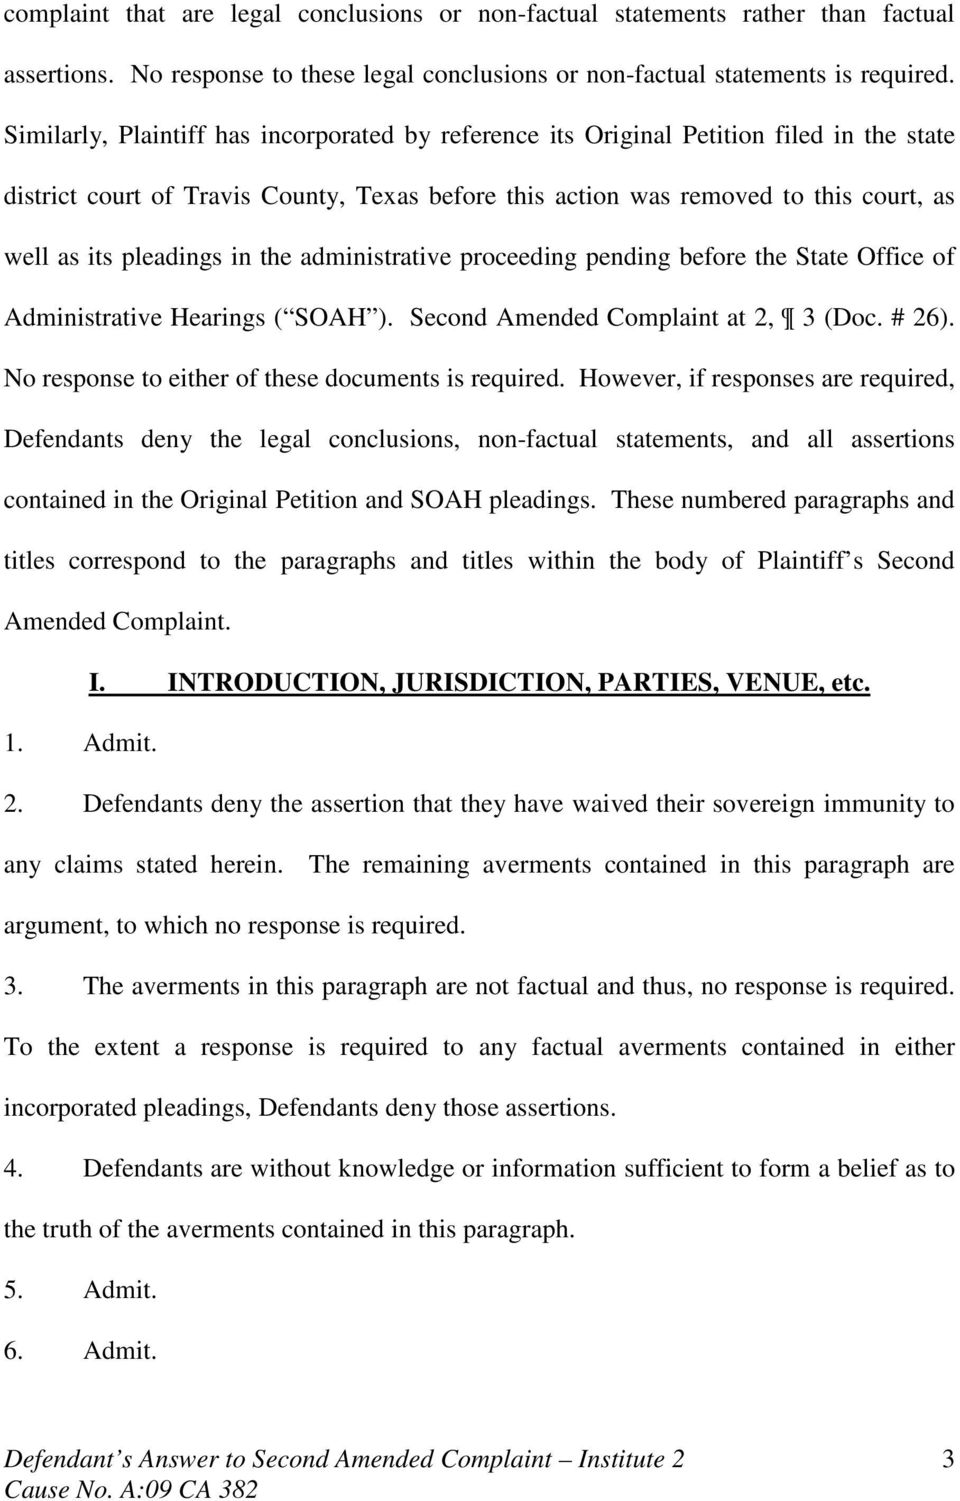 pleadings in the administrative proceeding pending before the State Office of Administrative Hearings ( SOAH ). Second Amended Complaint at 2, 3 (Doc. # 26).